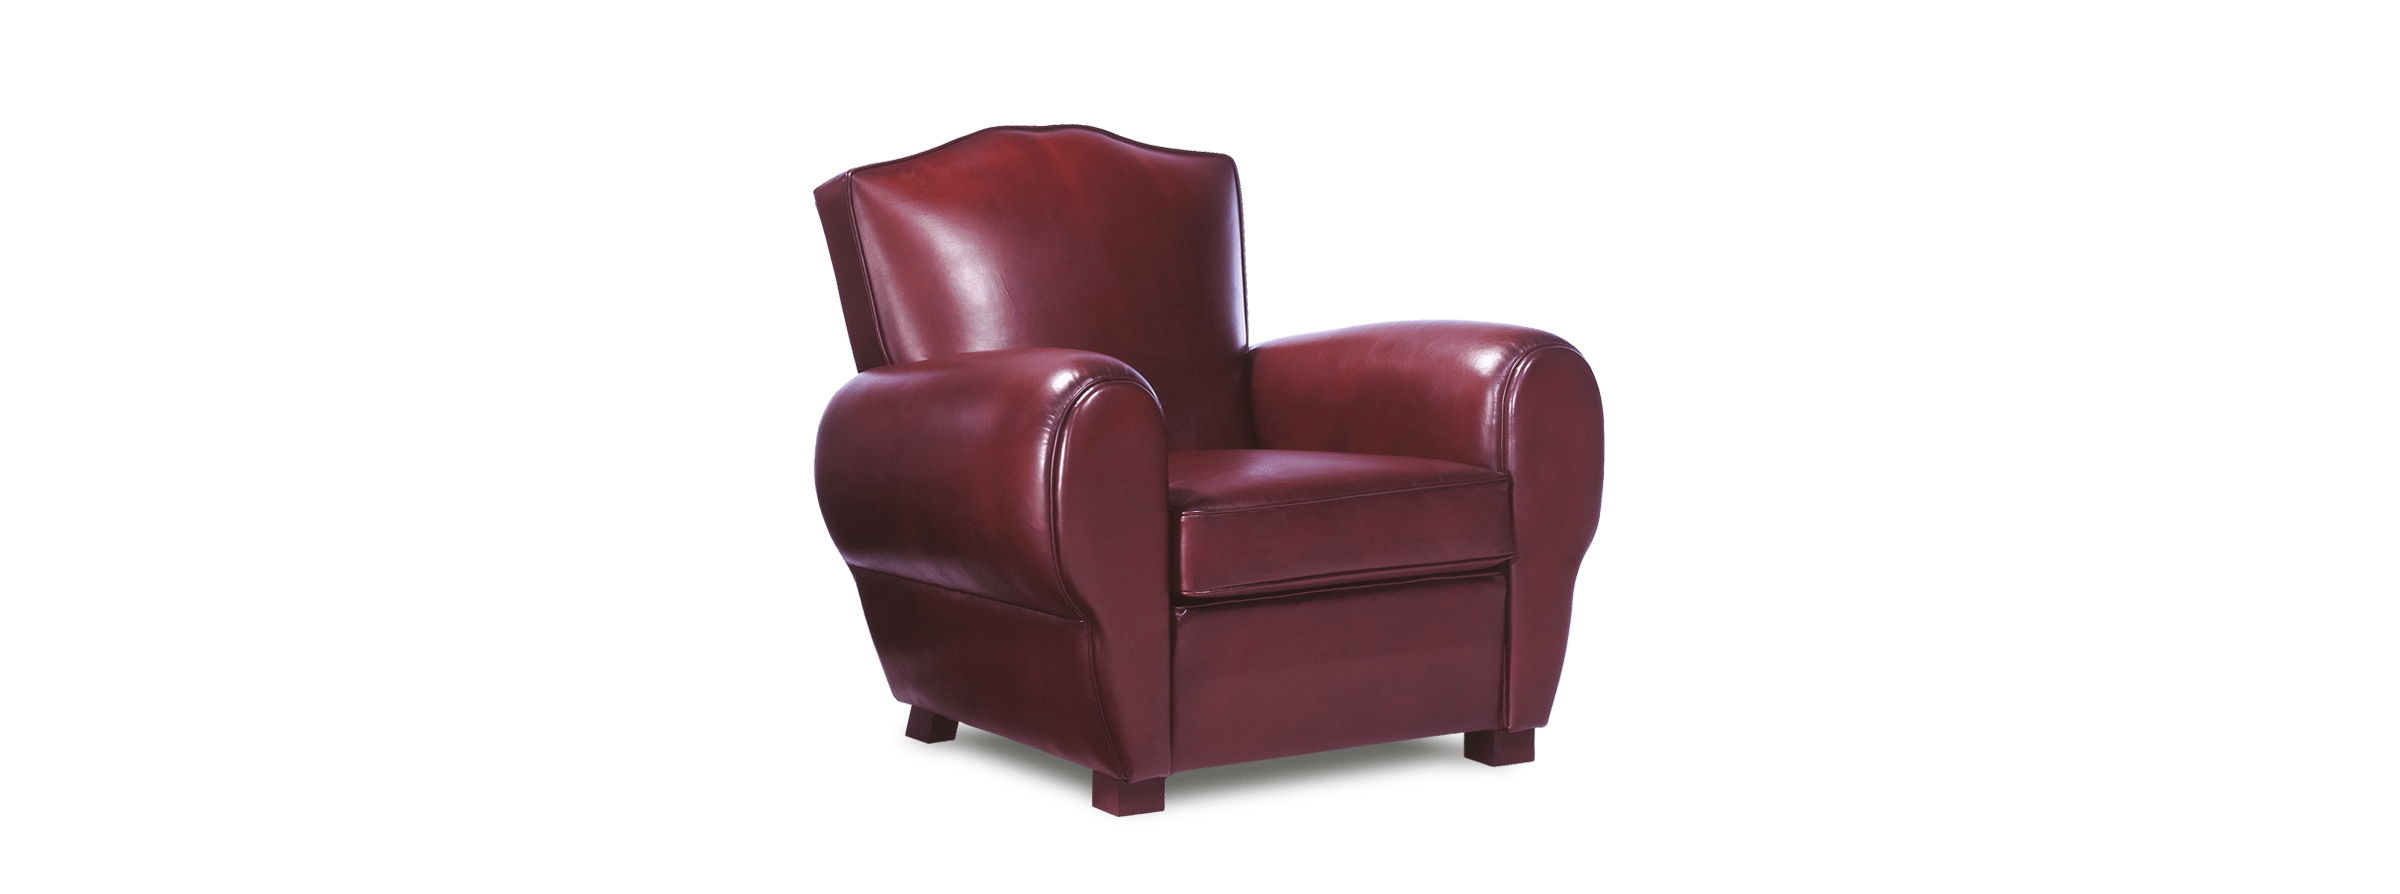 Neology Fauteuils Relax Chester Neology